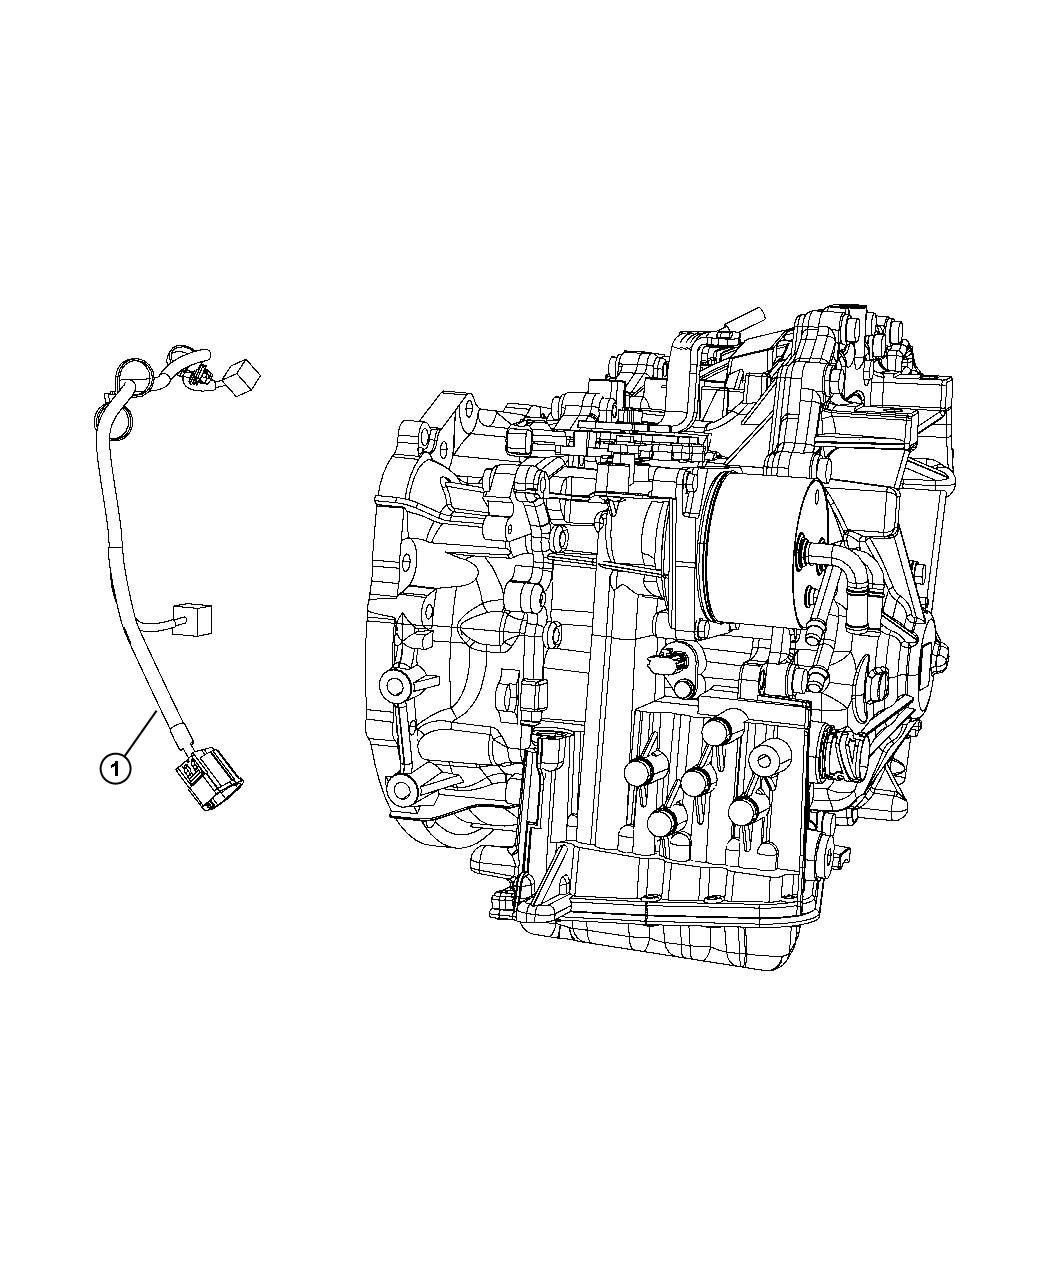 Jeep Compass Wiring. Transmission. [power train parts